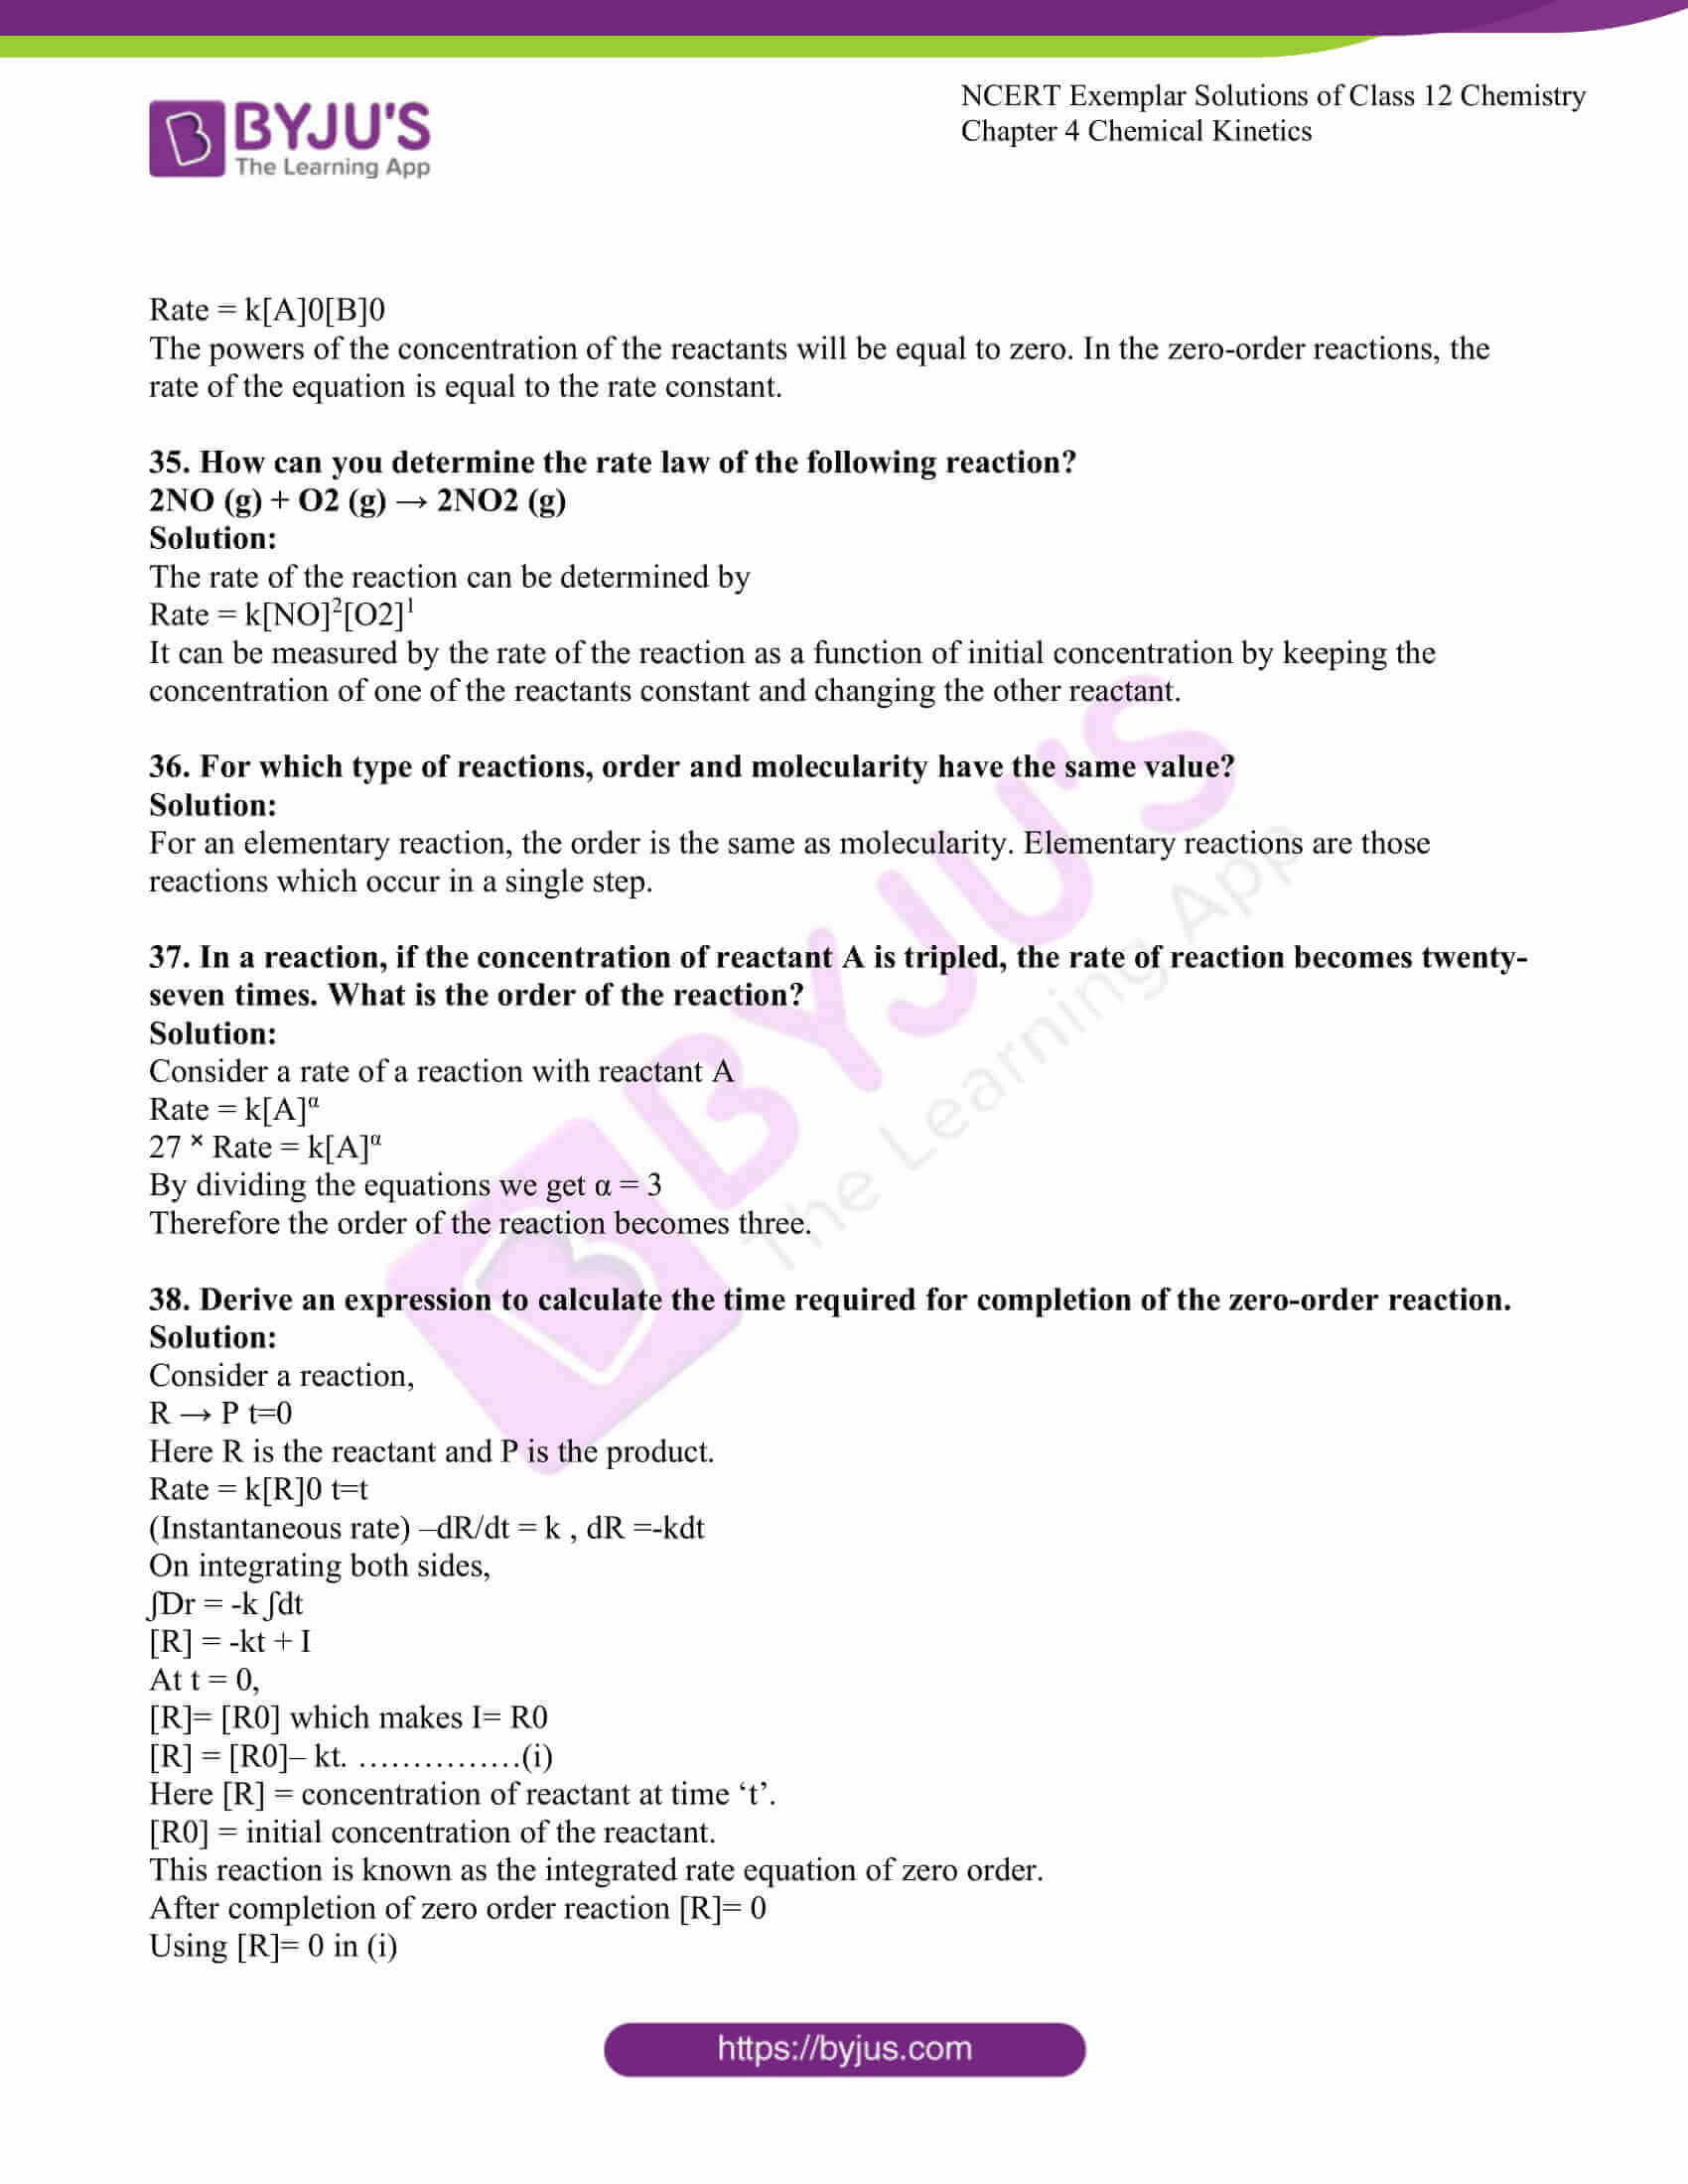 ncert exemplar solutions for class 12 chemistry chapter 4 chemical 12